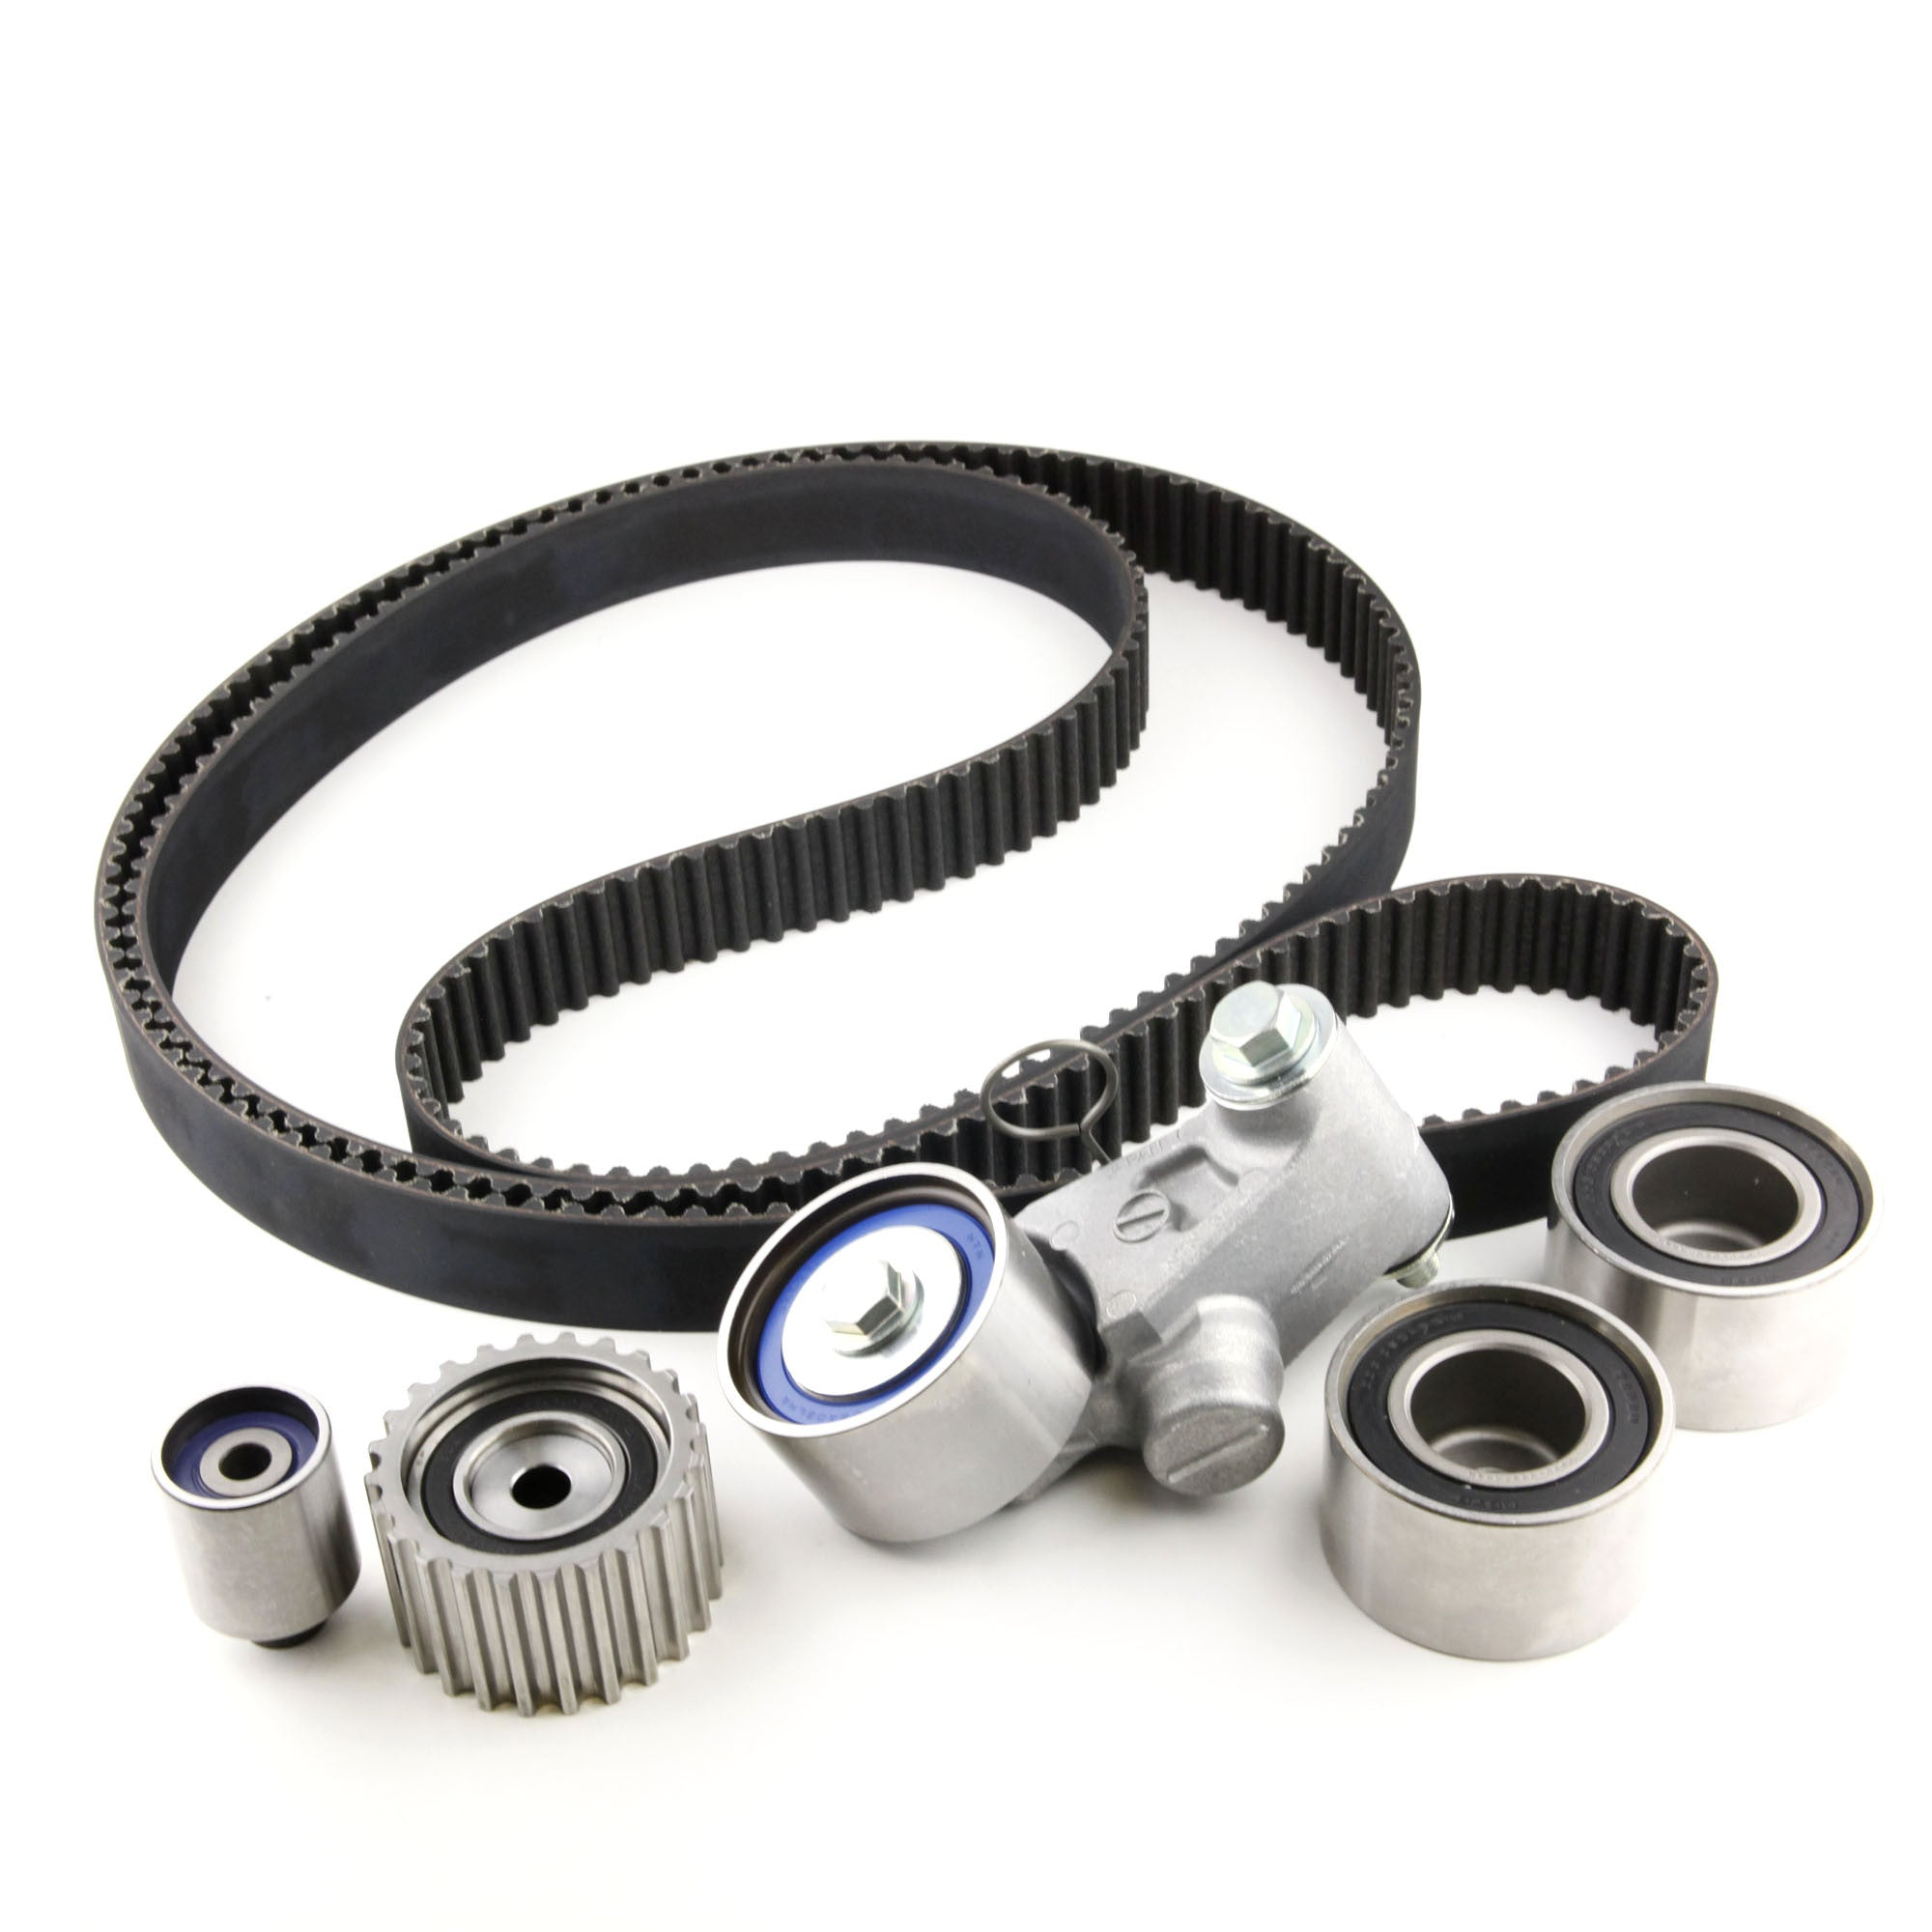 Gates Timing Belt Kit WITHOUT Water Pump 2002-2014 WRX/STI, 2003-2013  Forester, 2005-2009 Legacy GT/Outback XT